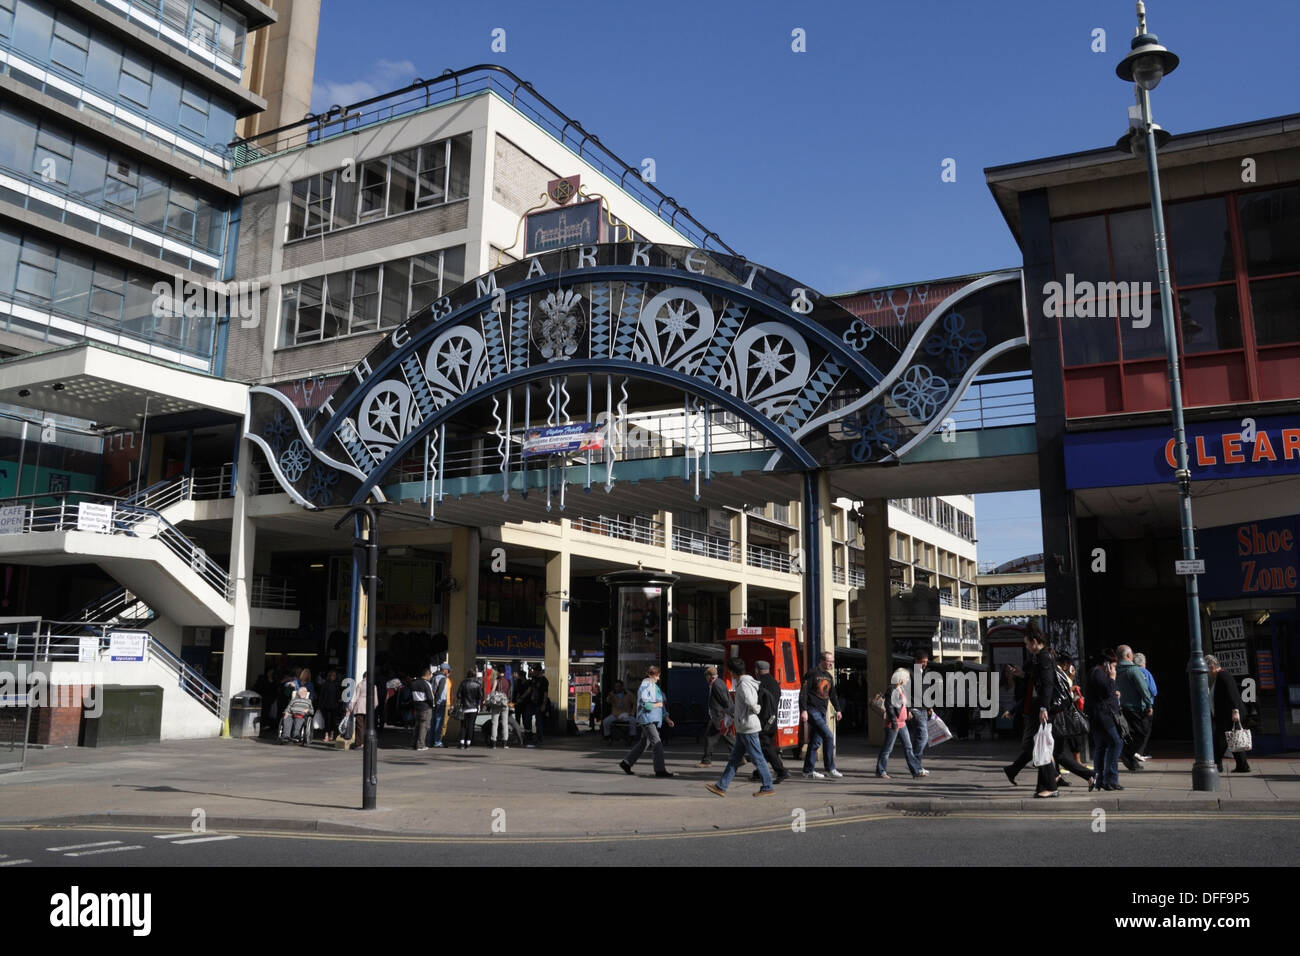 Castle Market building in Sheffield, 1960s Architecture, now demolished - Stock Image